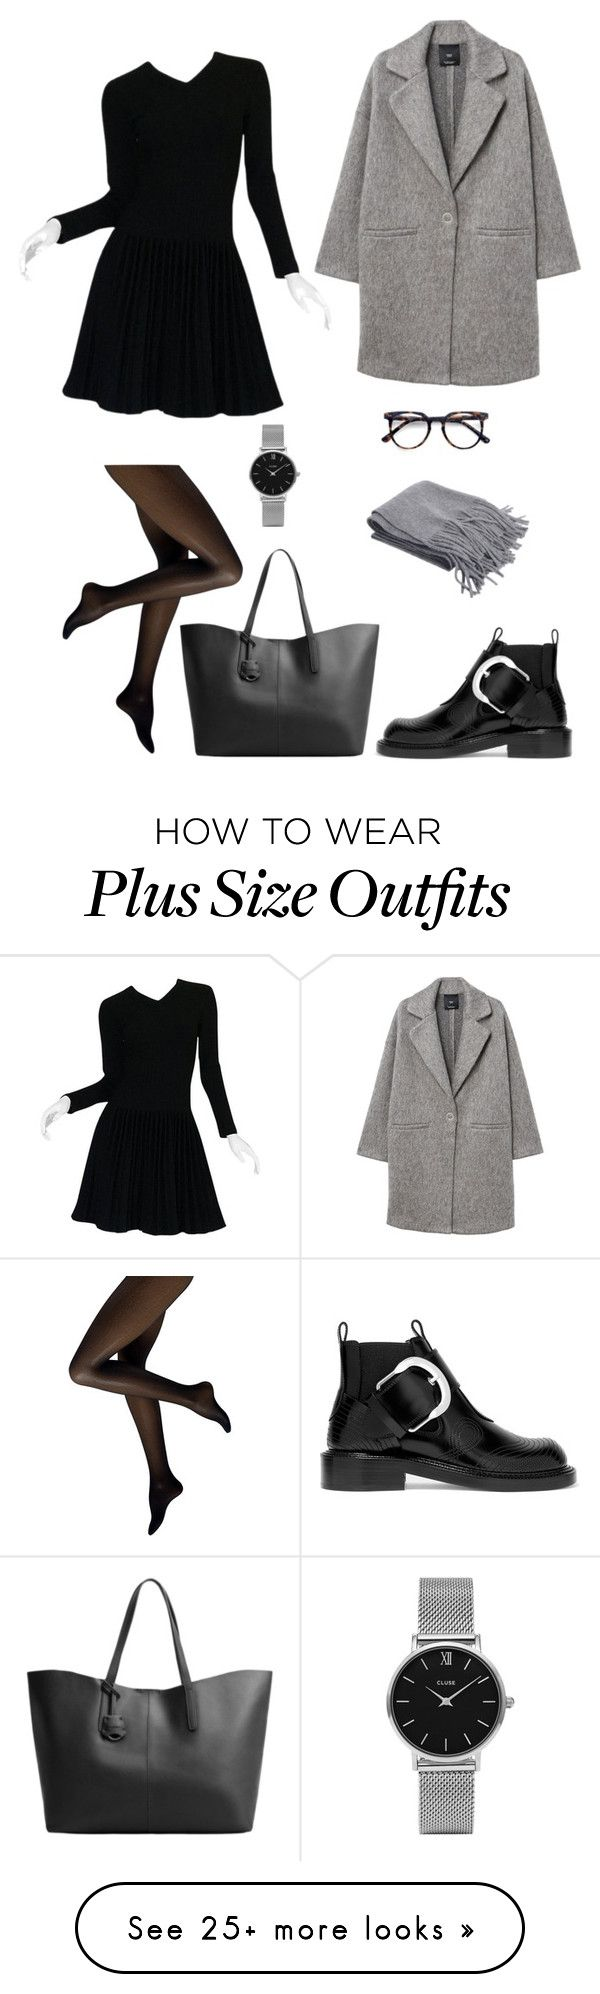 """""""Black dress and cool and chic"""" by andreallaustin on Polyvore featuring Alaïa, MANGO, Maison Margiela, CLUSE and Ace"""